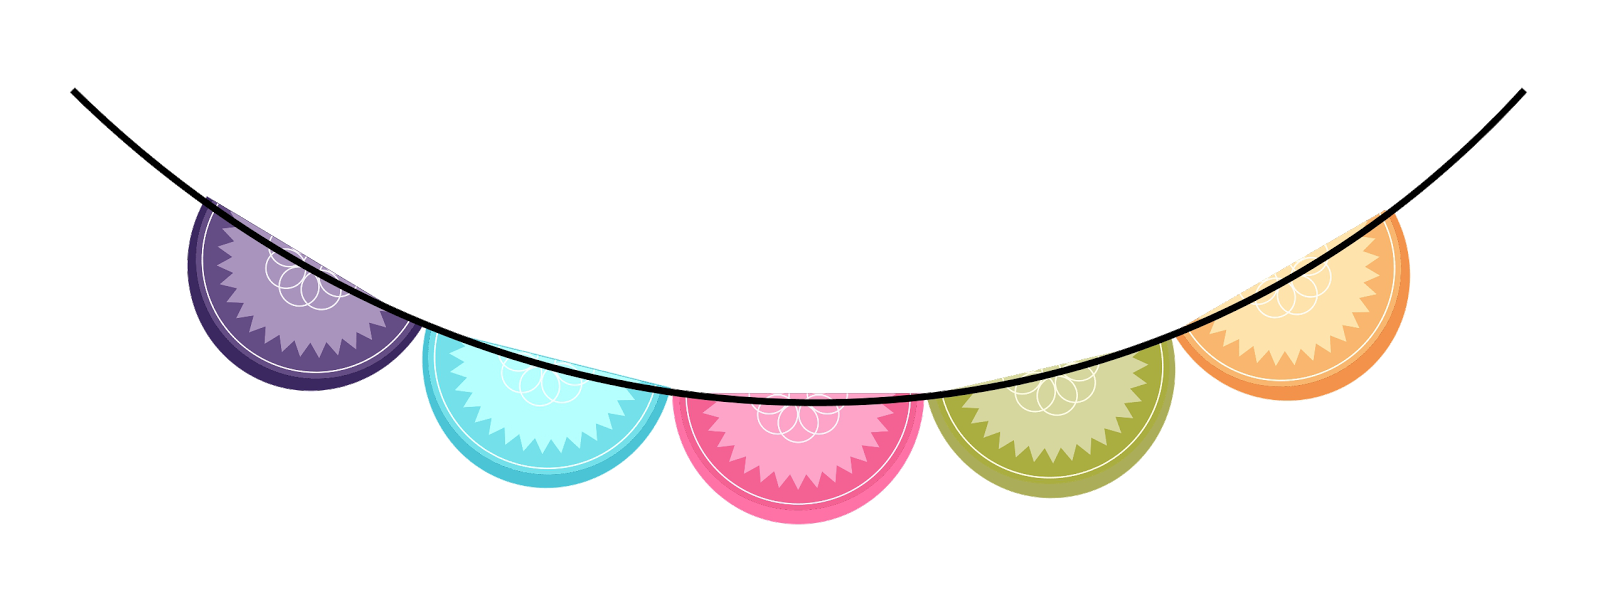 Circle bunting clipart svg royalty free stock Bunting Border Clipart | Free download best Bunting Border Clipart ... svg royalty free stock